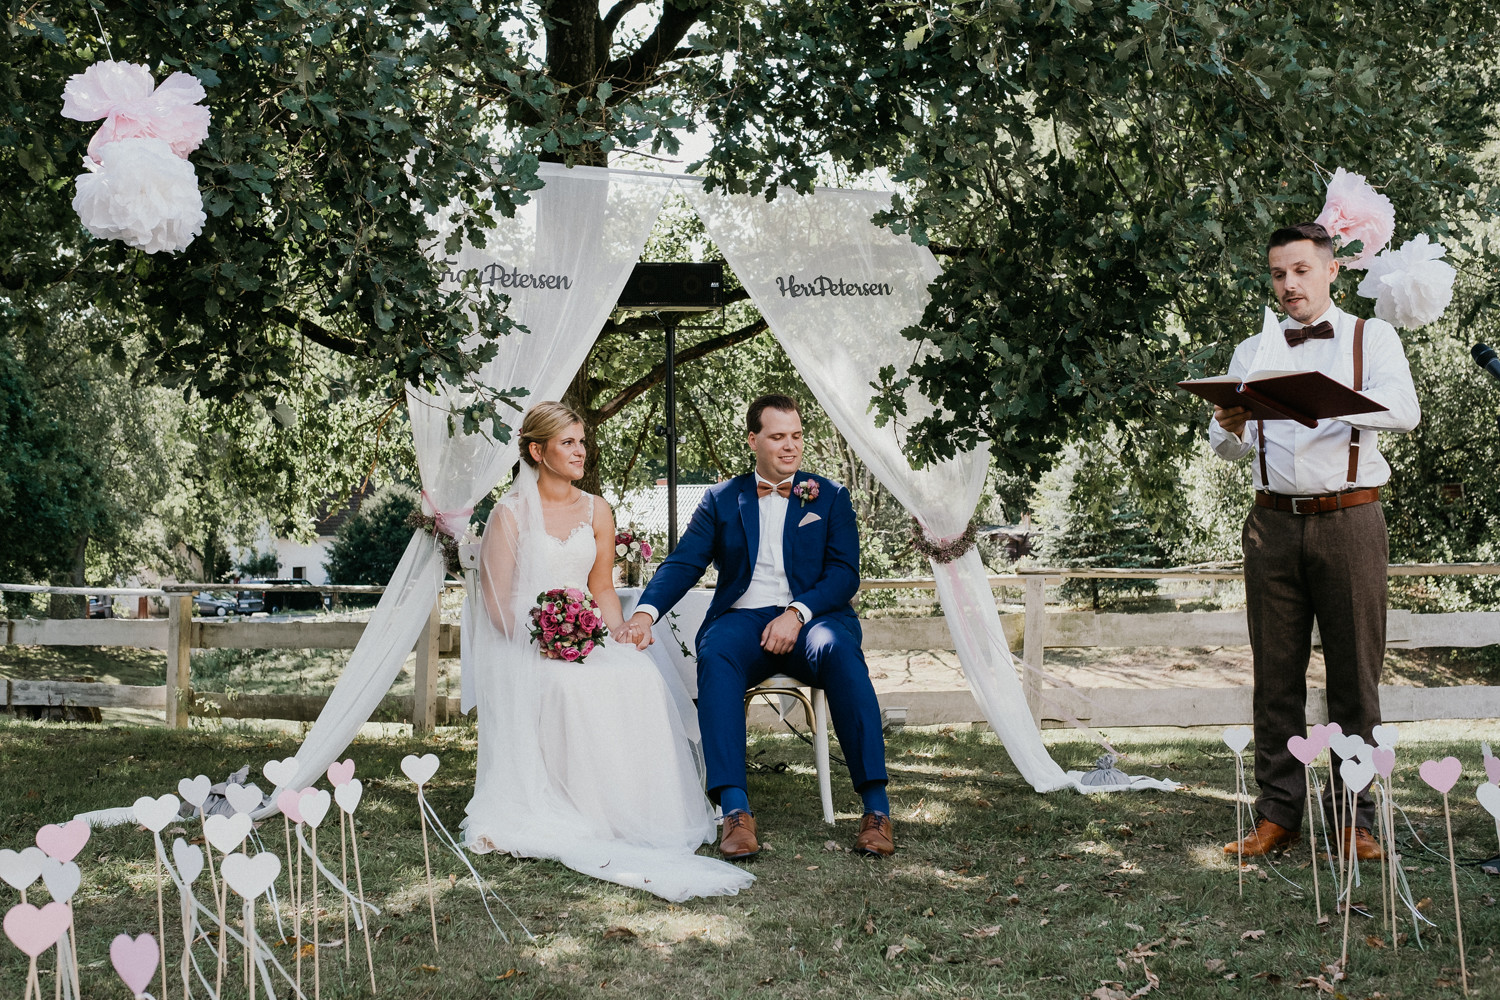 Garden Wedding - SoulMade Fotodesign